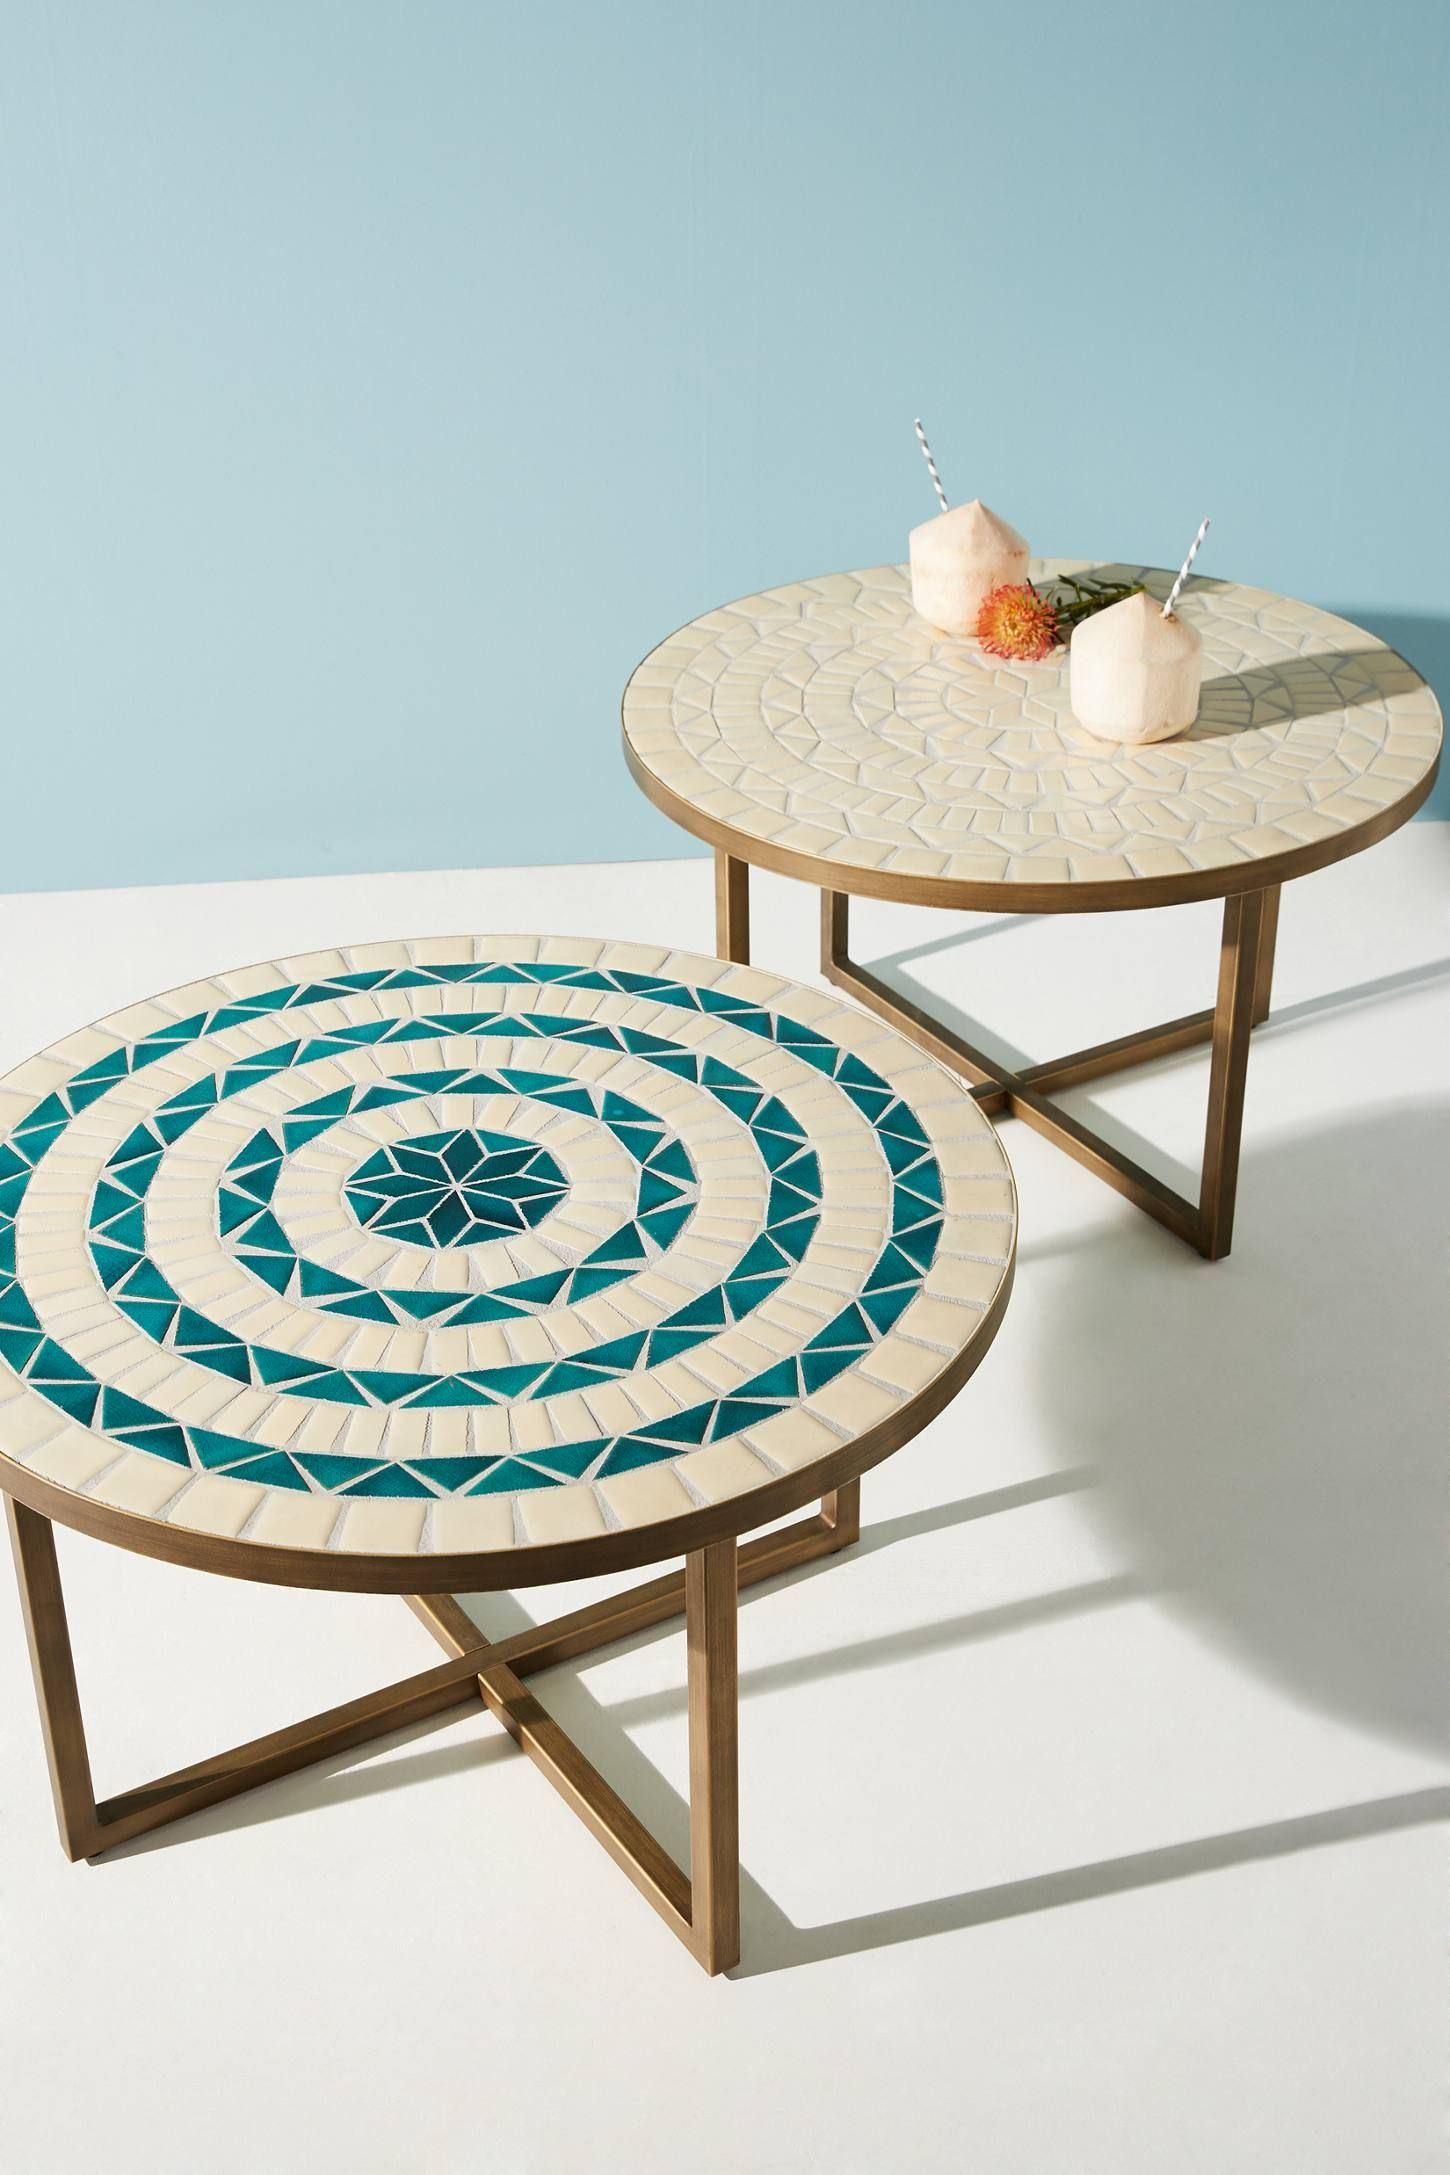 Tangier Indoor Outdoor Coffee Table Anthropologie Coffee Table Small Space Small Coffee Table Outdoor Coffee Tables